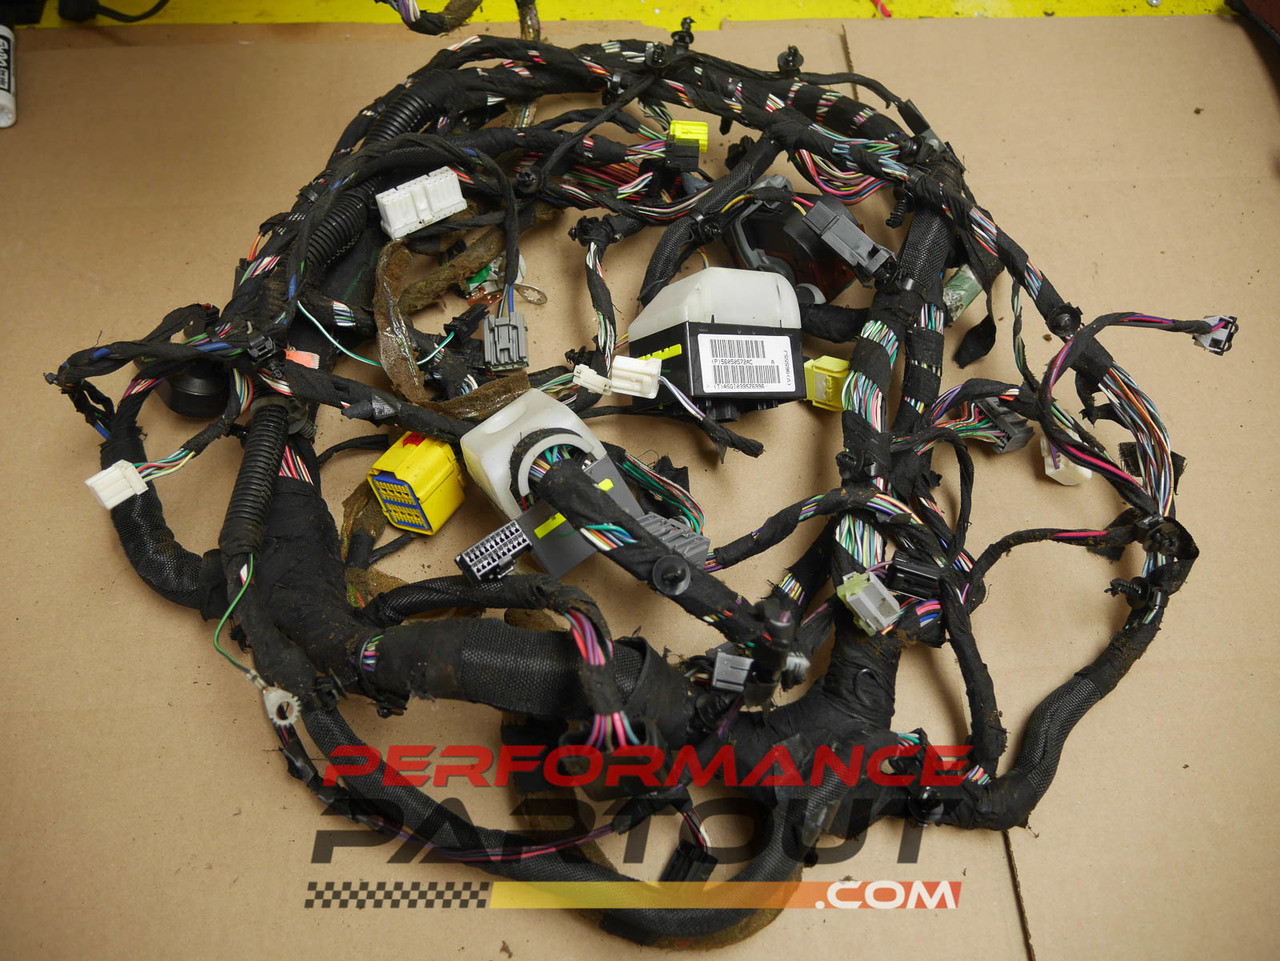 jeep grand cherokee wiring harness wiring diagram 500 fuel injection kits for jeep wiring harness for jeep #14